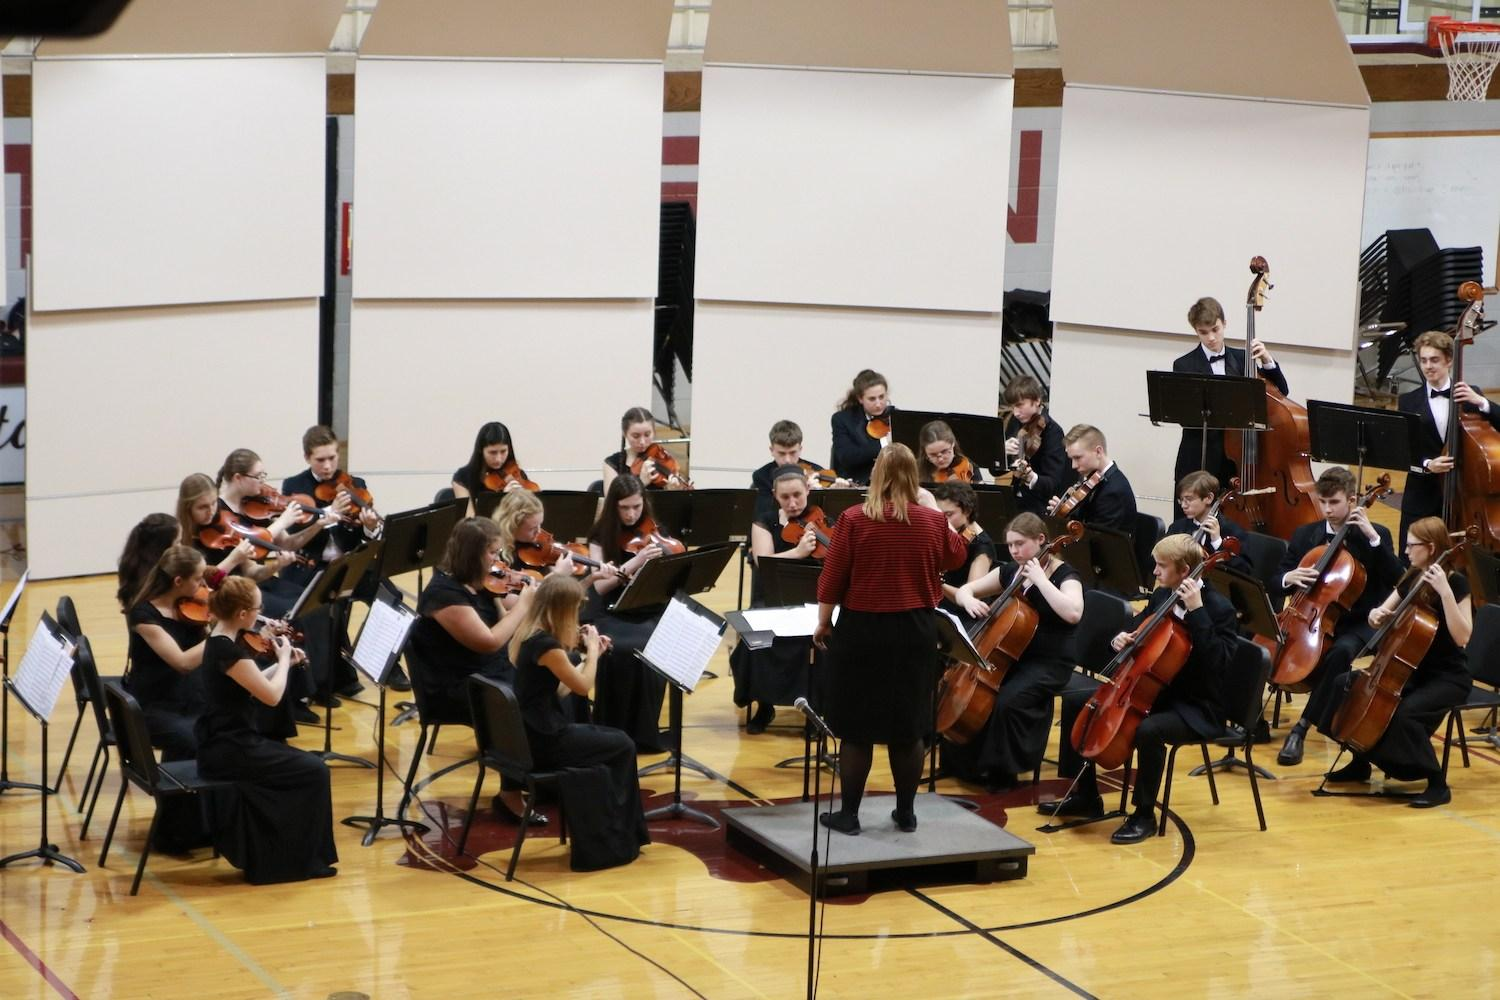 Director Tabitha Rasmussen and the High School Orchestra